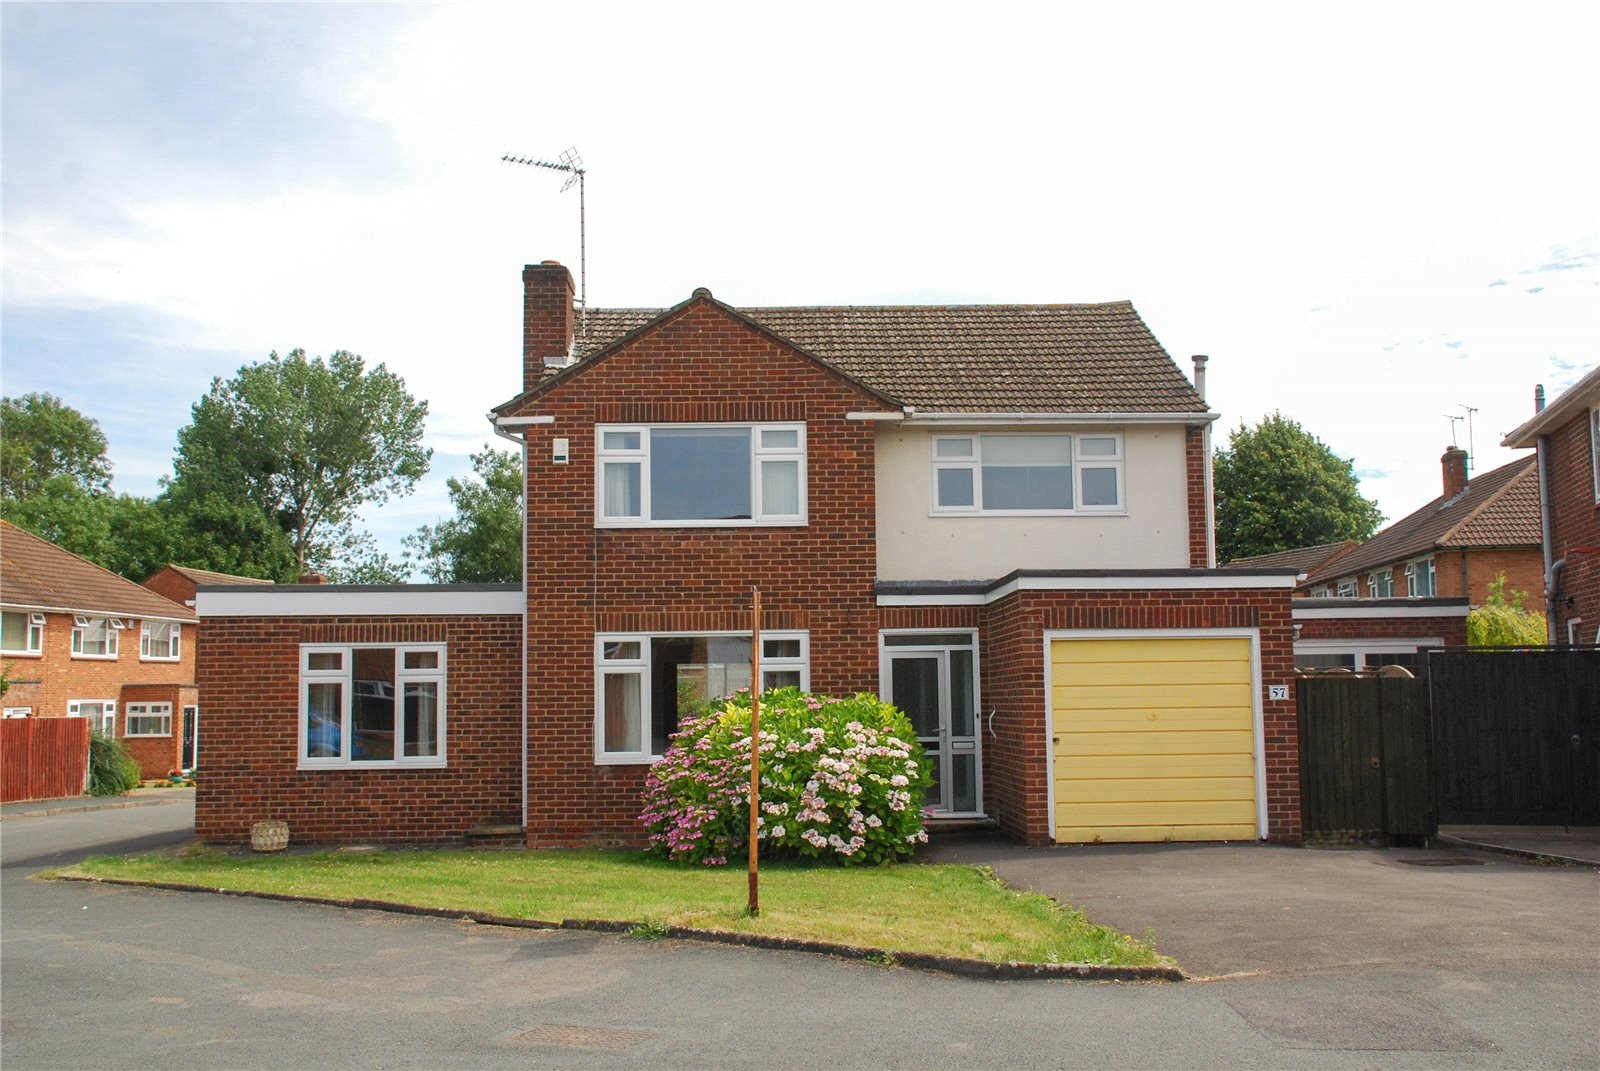 3 Bedrooms Detached House for sale in Lilliesfield Avenue Hucclecote GLOUCESTER GL3